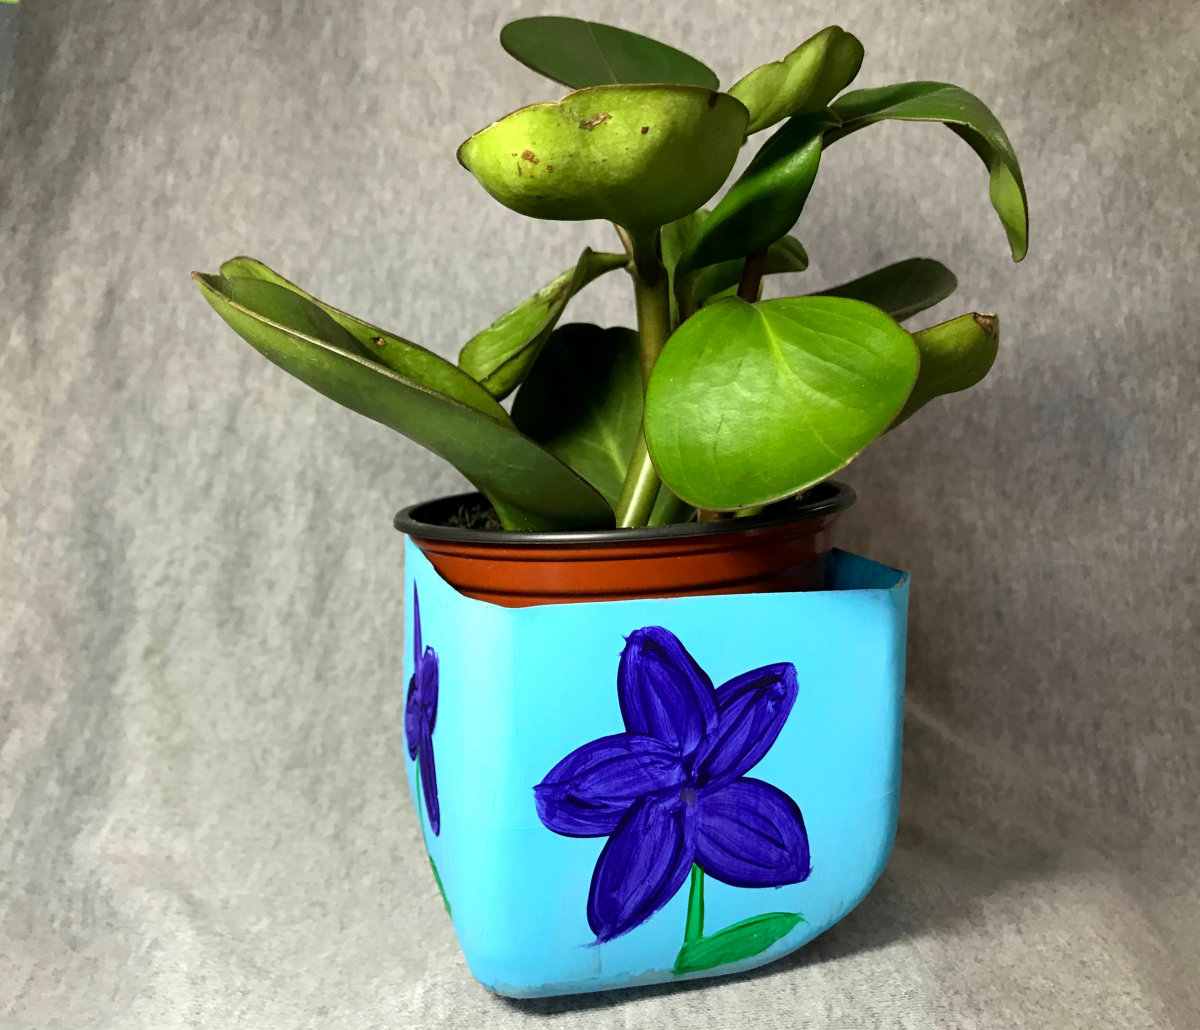 Blue upcycled planter with a plant